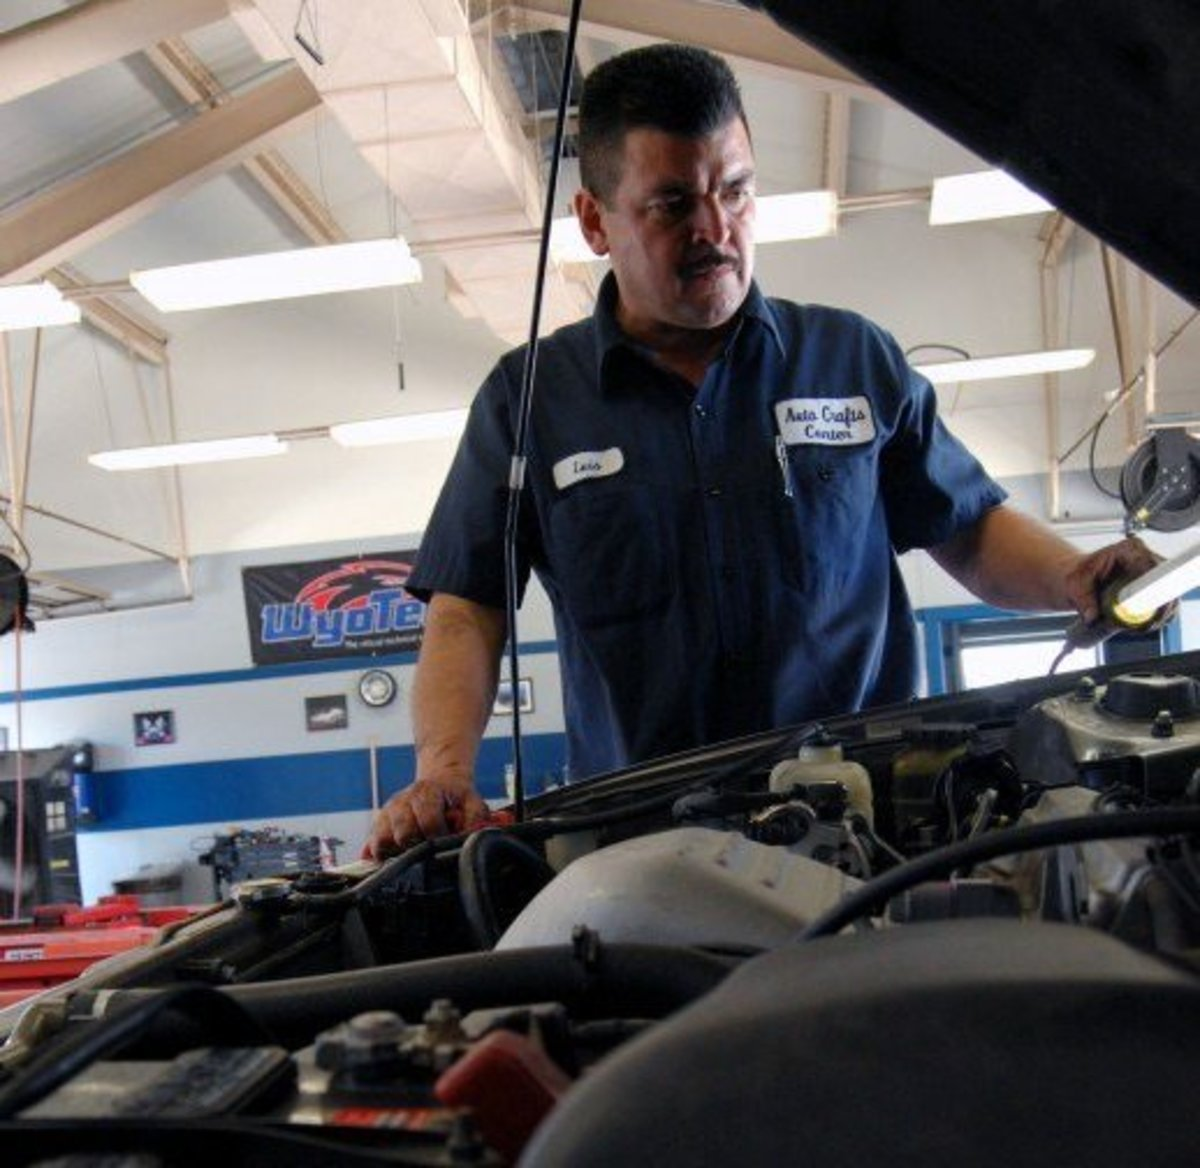 An auto mechanic prepares a vehicle for an emissions test.